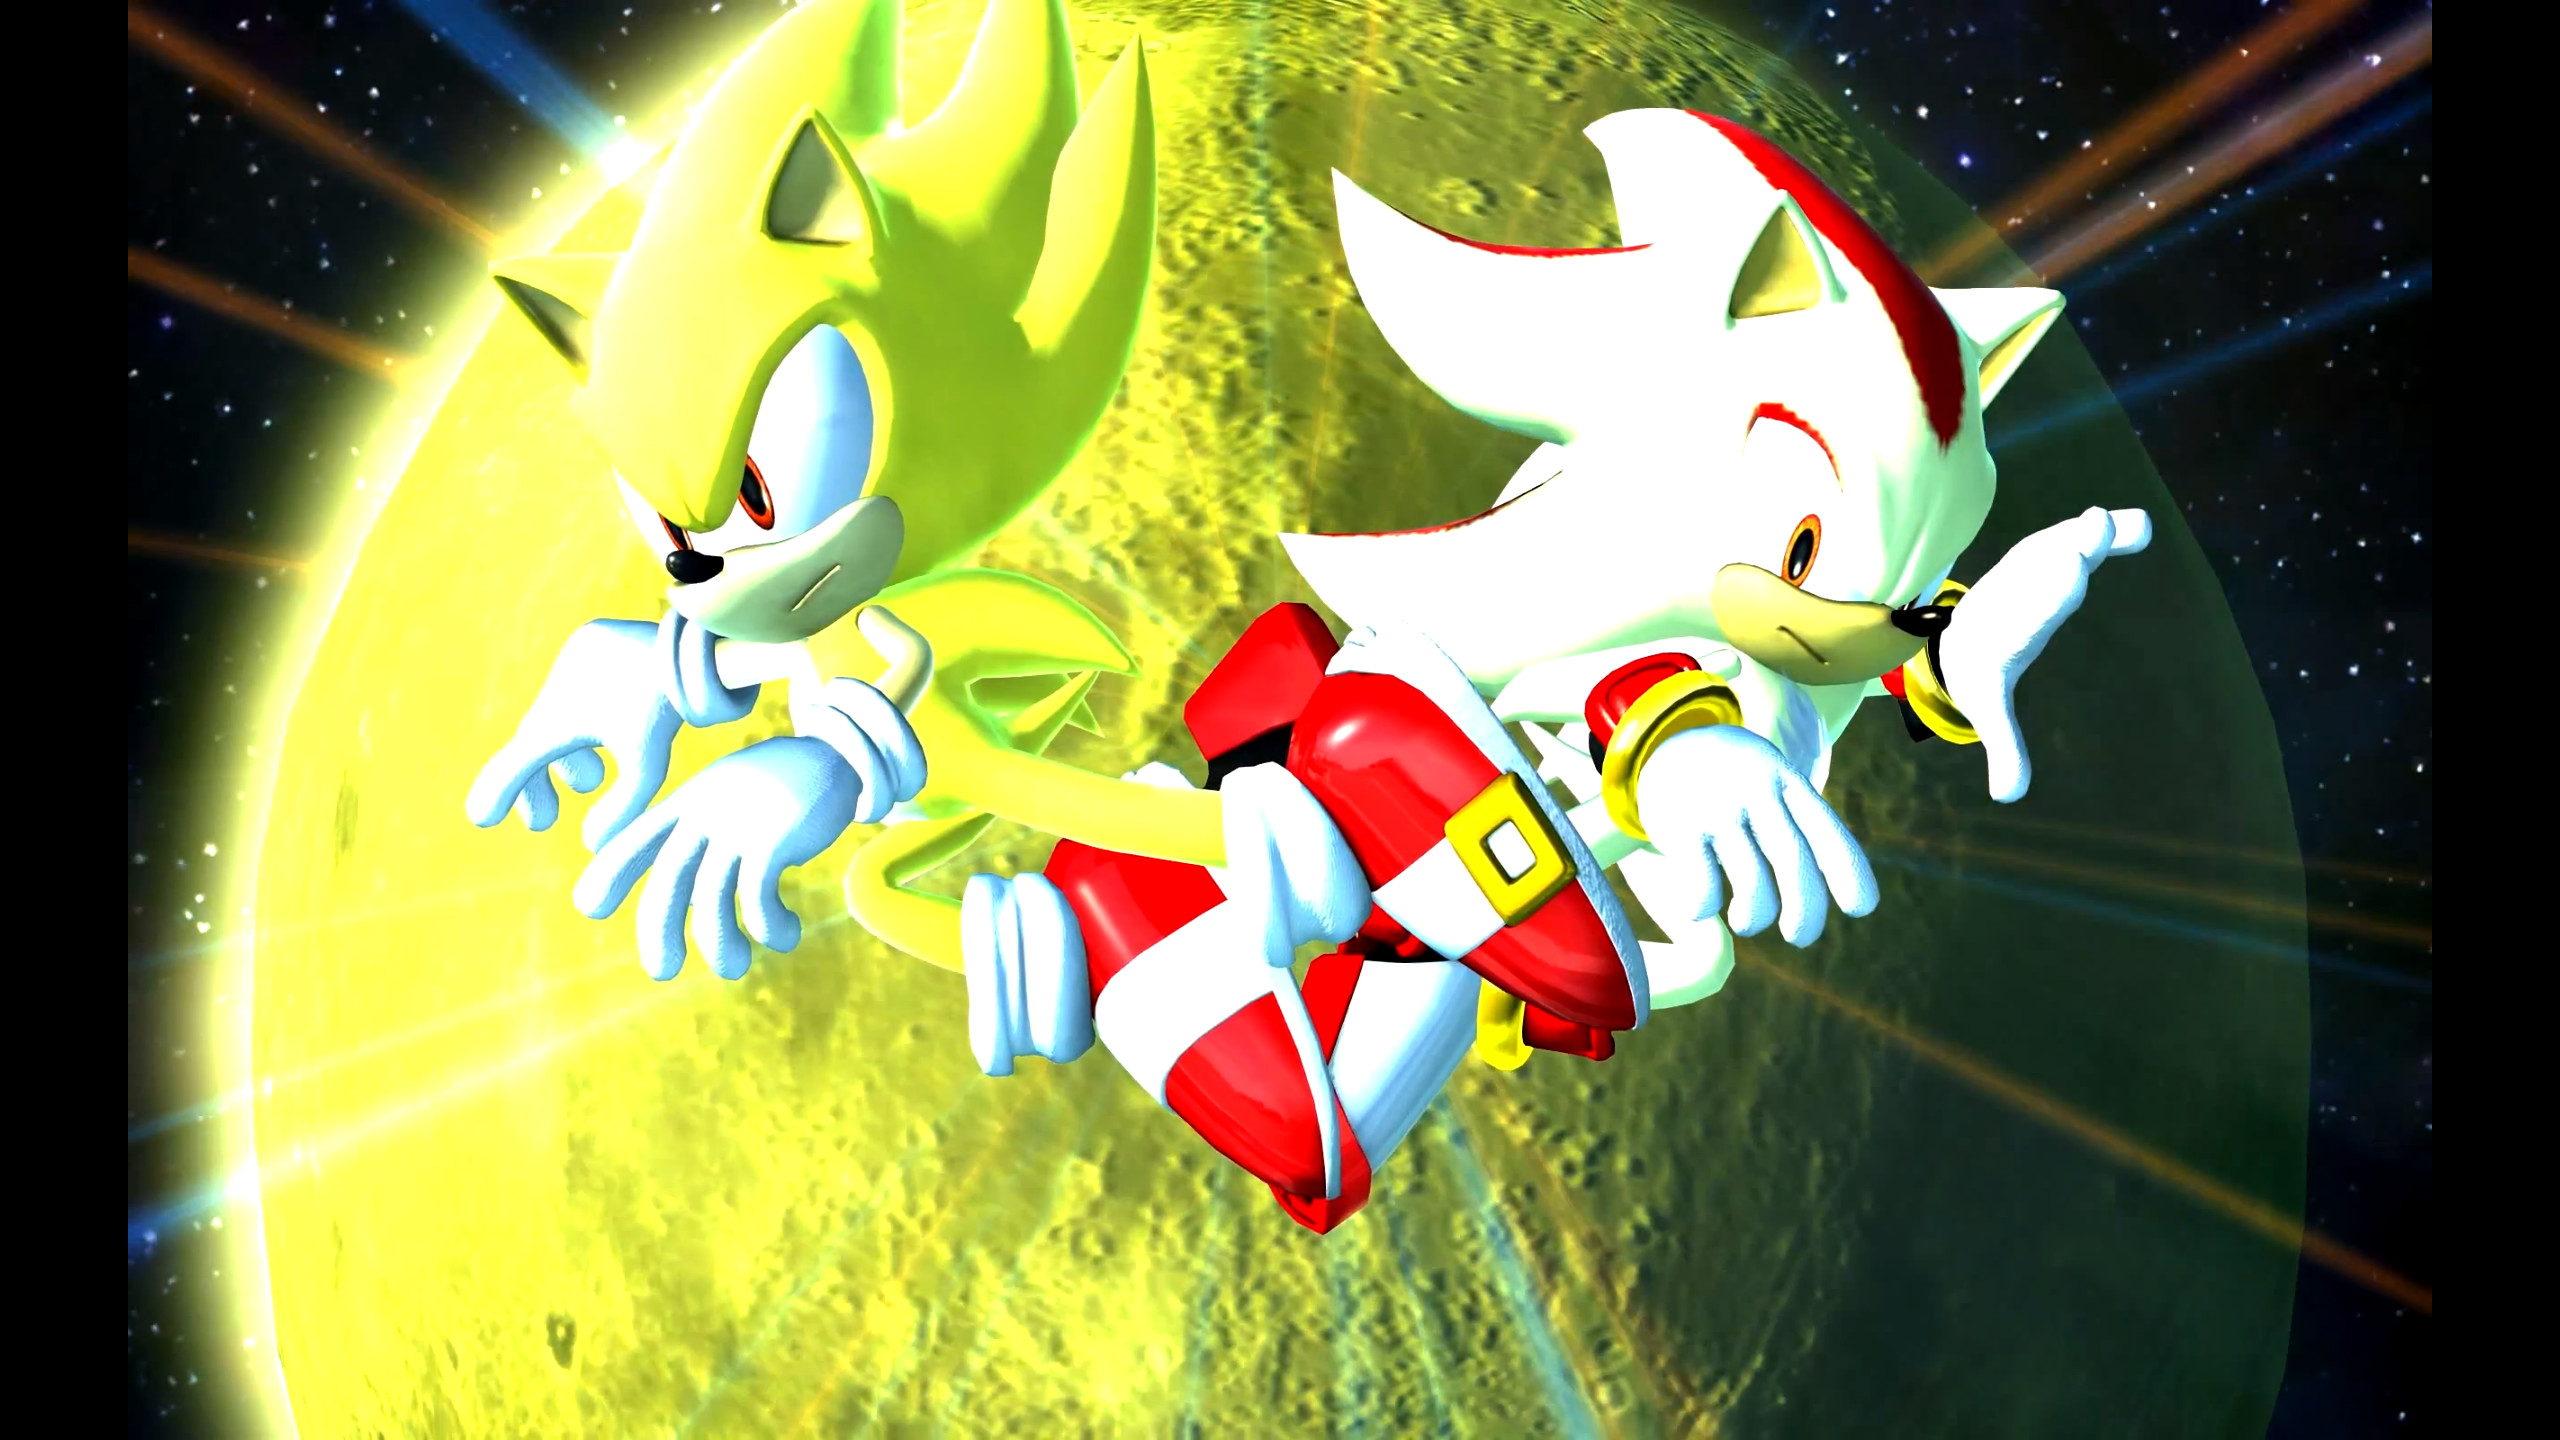 2560x1440 sonic x shadow wallpaper picture, sonic x shadow wallpaper wallpaper